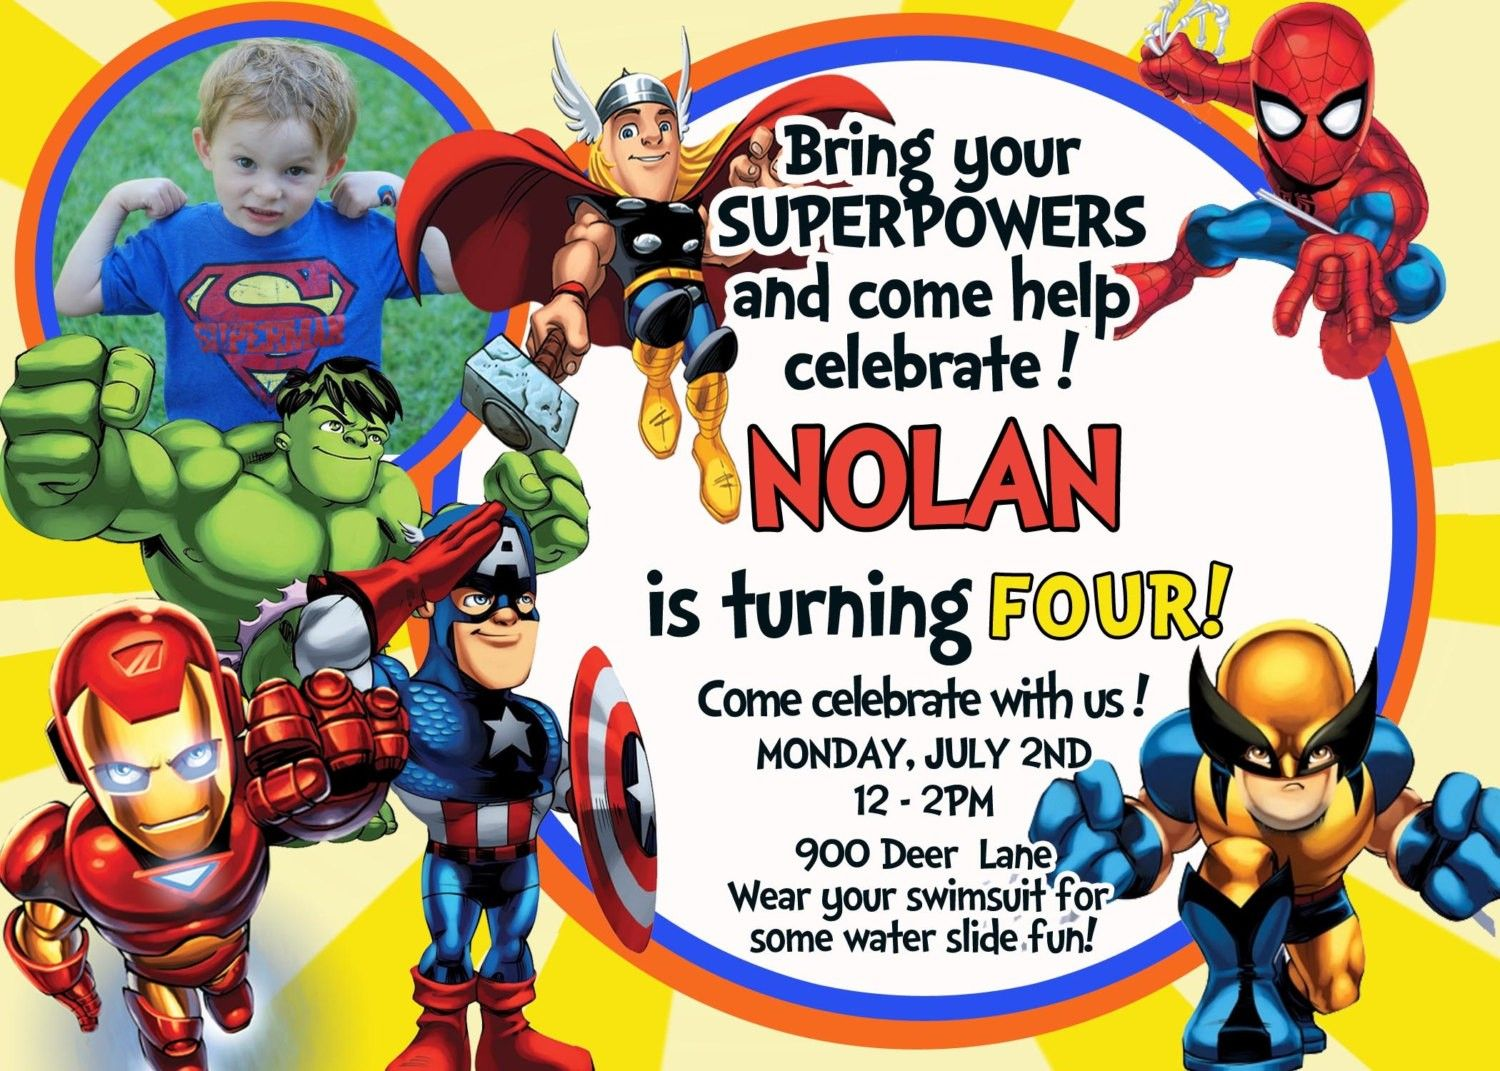 Make your own avengers birthday invitations templates more http avengers birthday invitations templates more httpsilverlininginvitations201702make your own avengers birthday invitations templates9848 stopboris Images